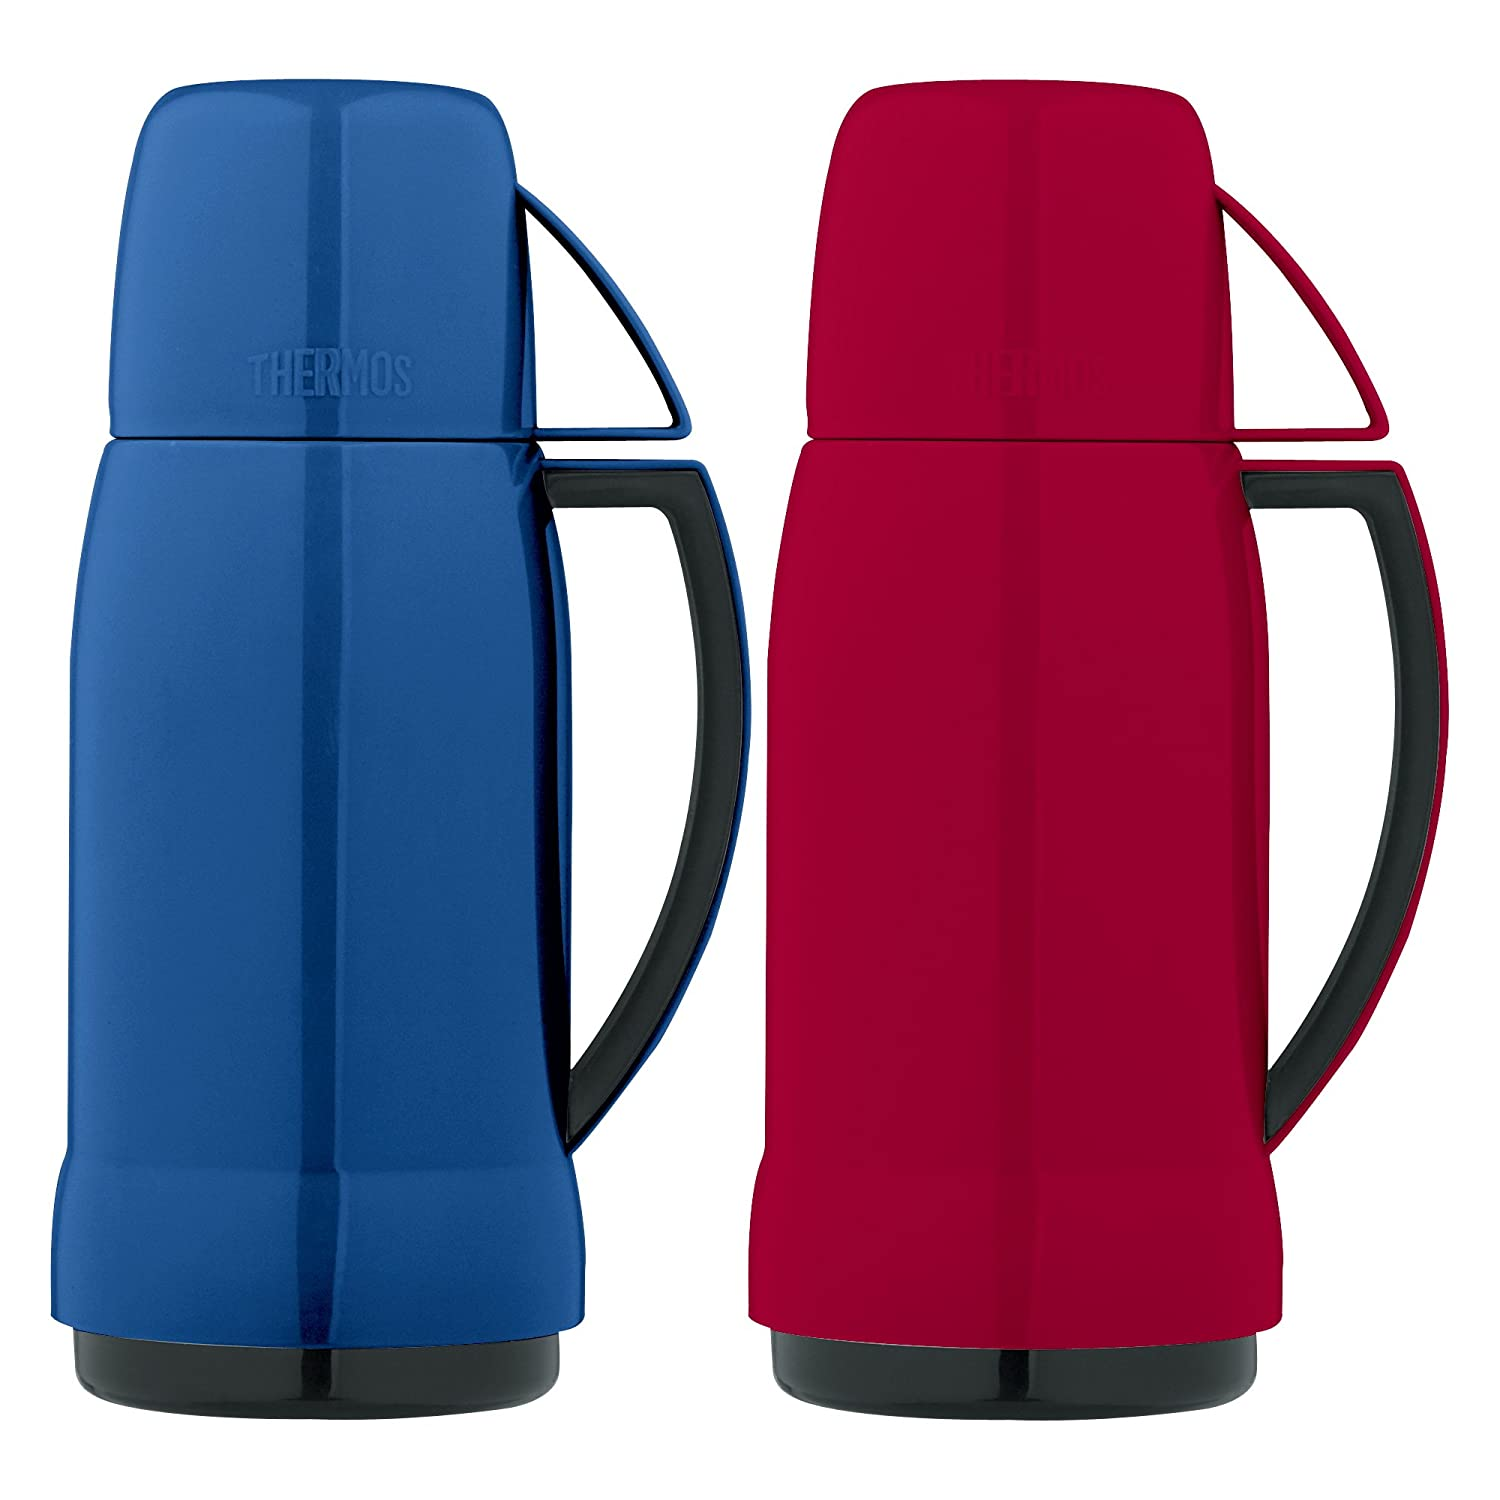 THERMOS CO 33105RB6 Vacuum Bottle Assorted Colors, 17 Oz